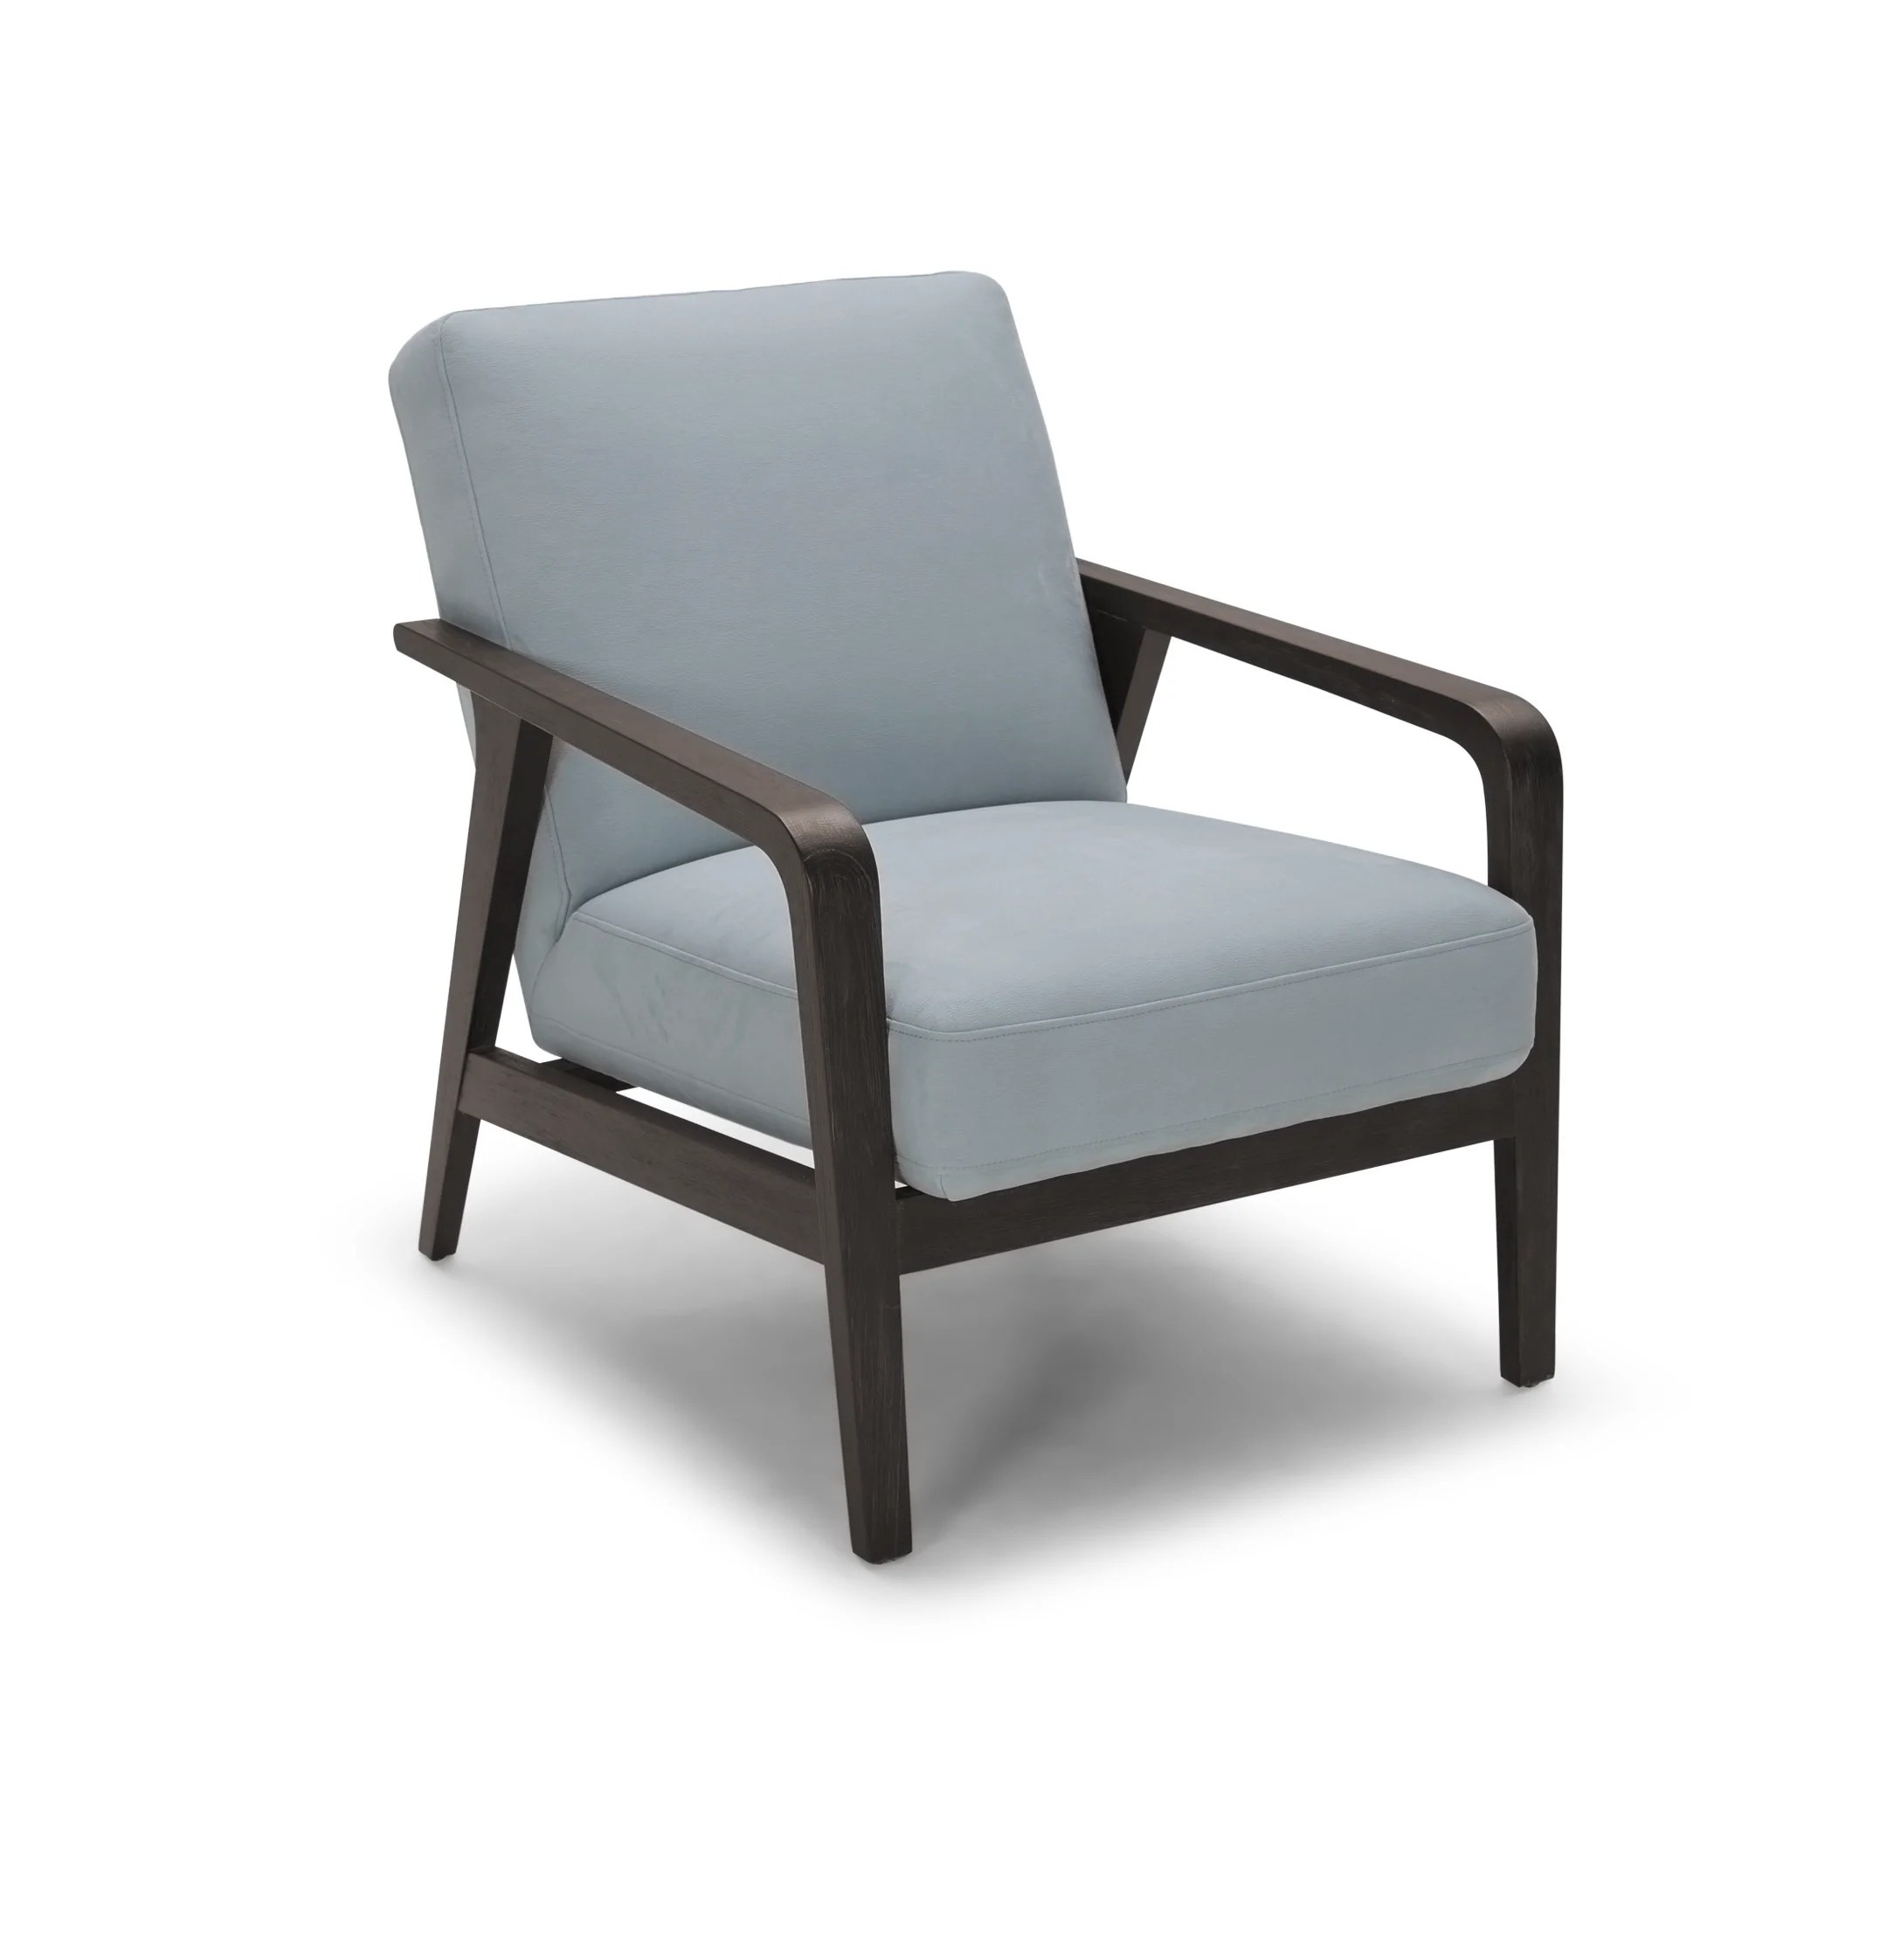 Contemporary Furniture Calgary Nesting Chairs Edmonton Nest Chair Bumps Charcoal Accent